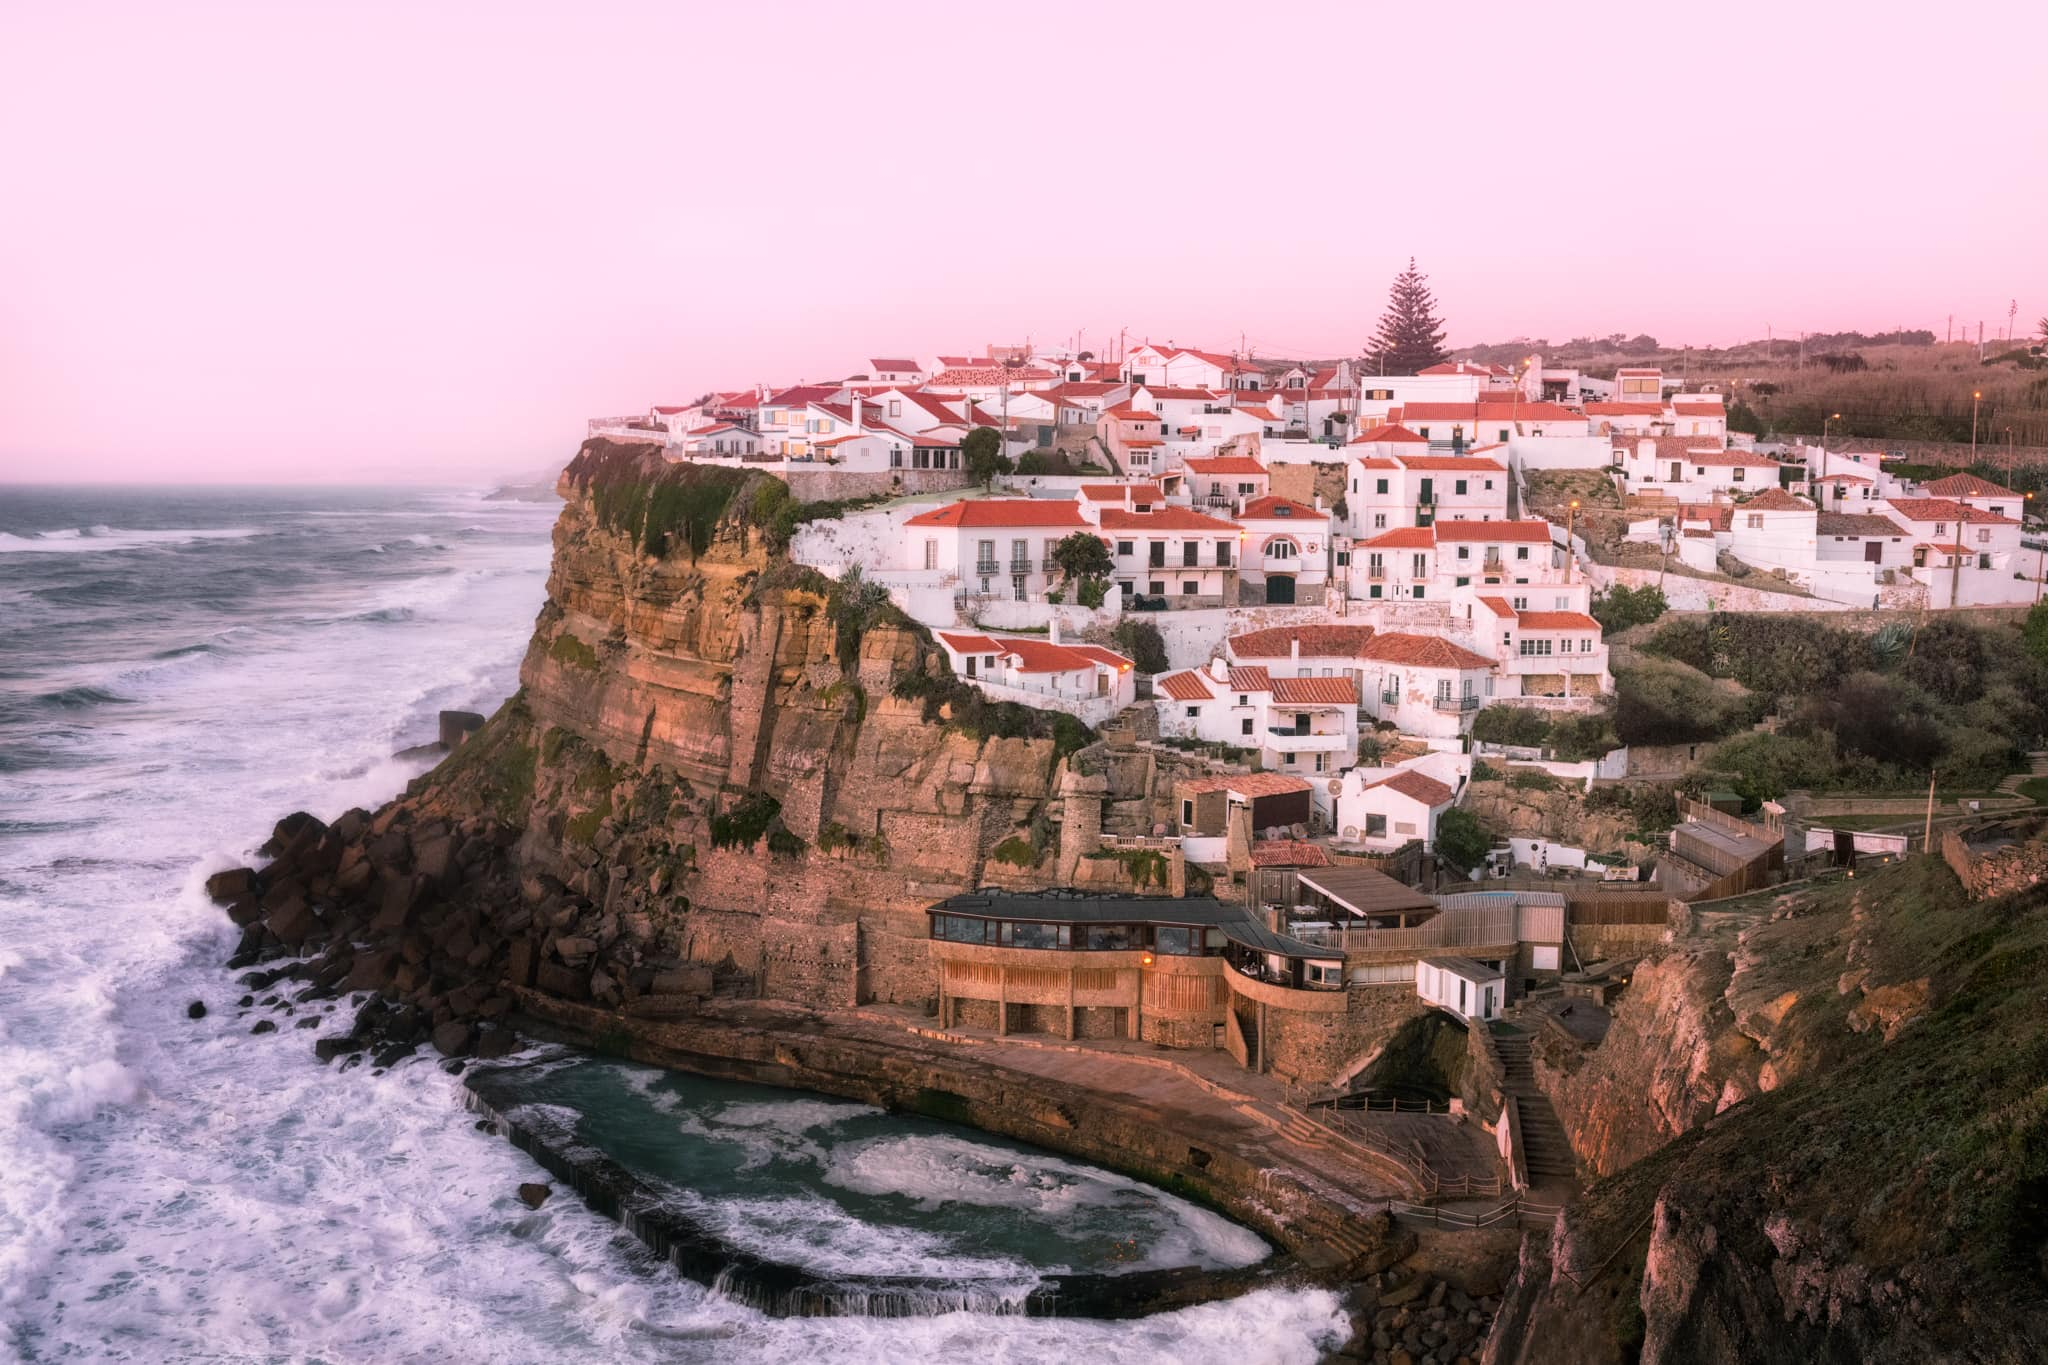 Ansichten von Azenhas do Mar | Portugal